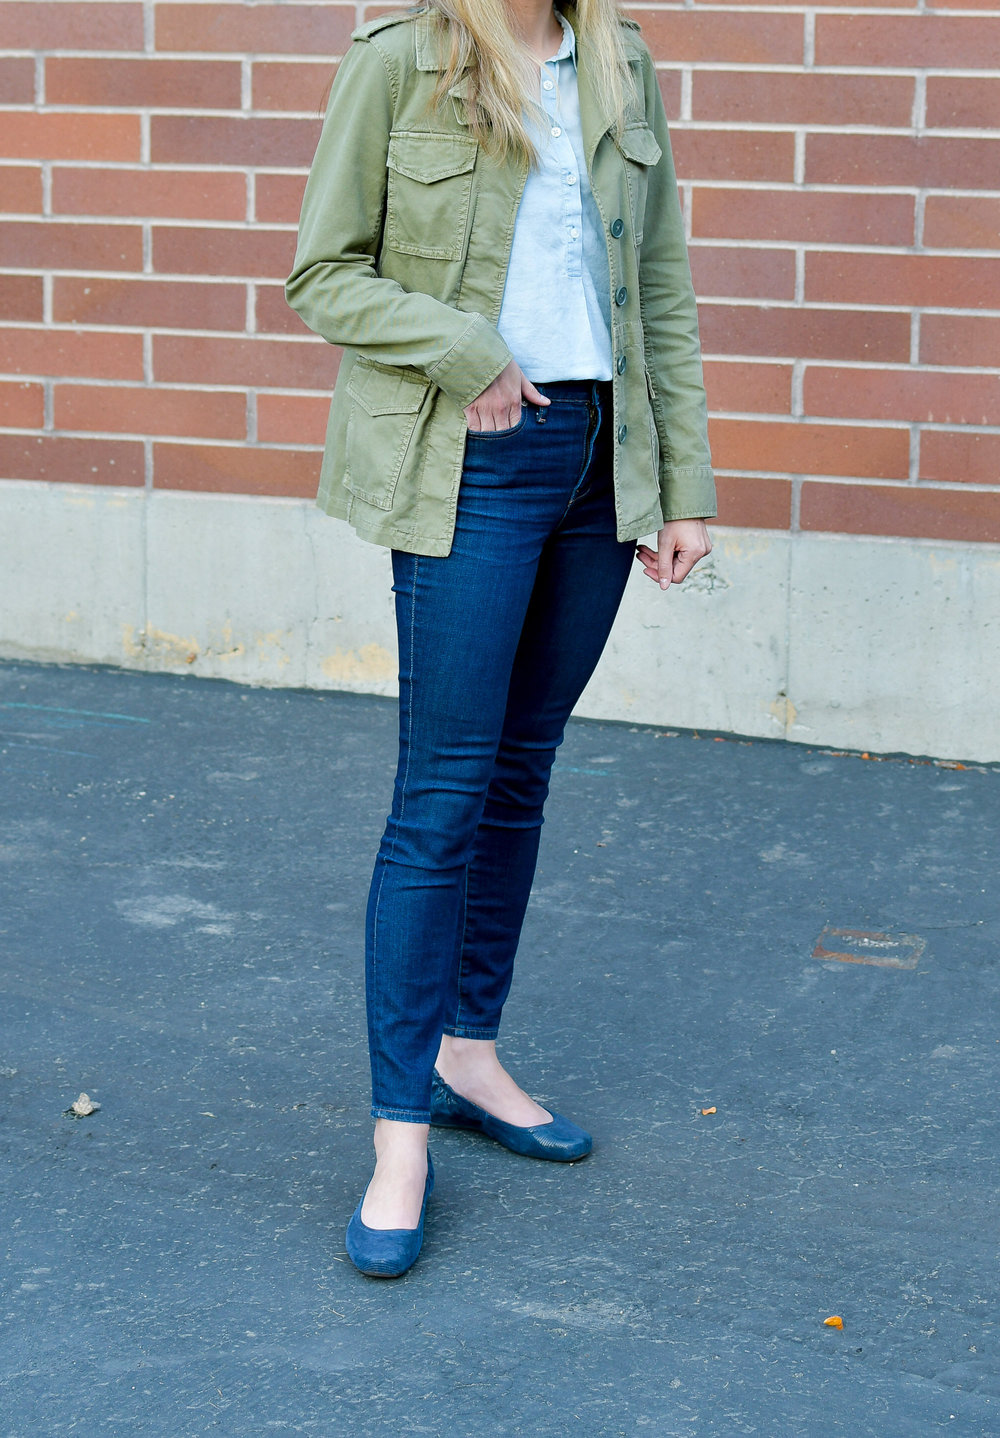 Earthies 'Tolo' flats outfit with utility jacket and high-rise jeans — Cotton Cashmere Cat Hair